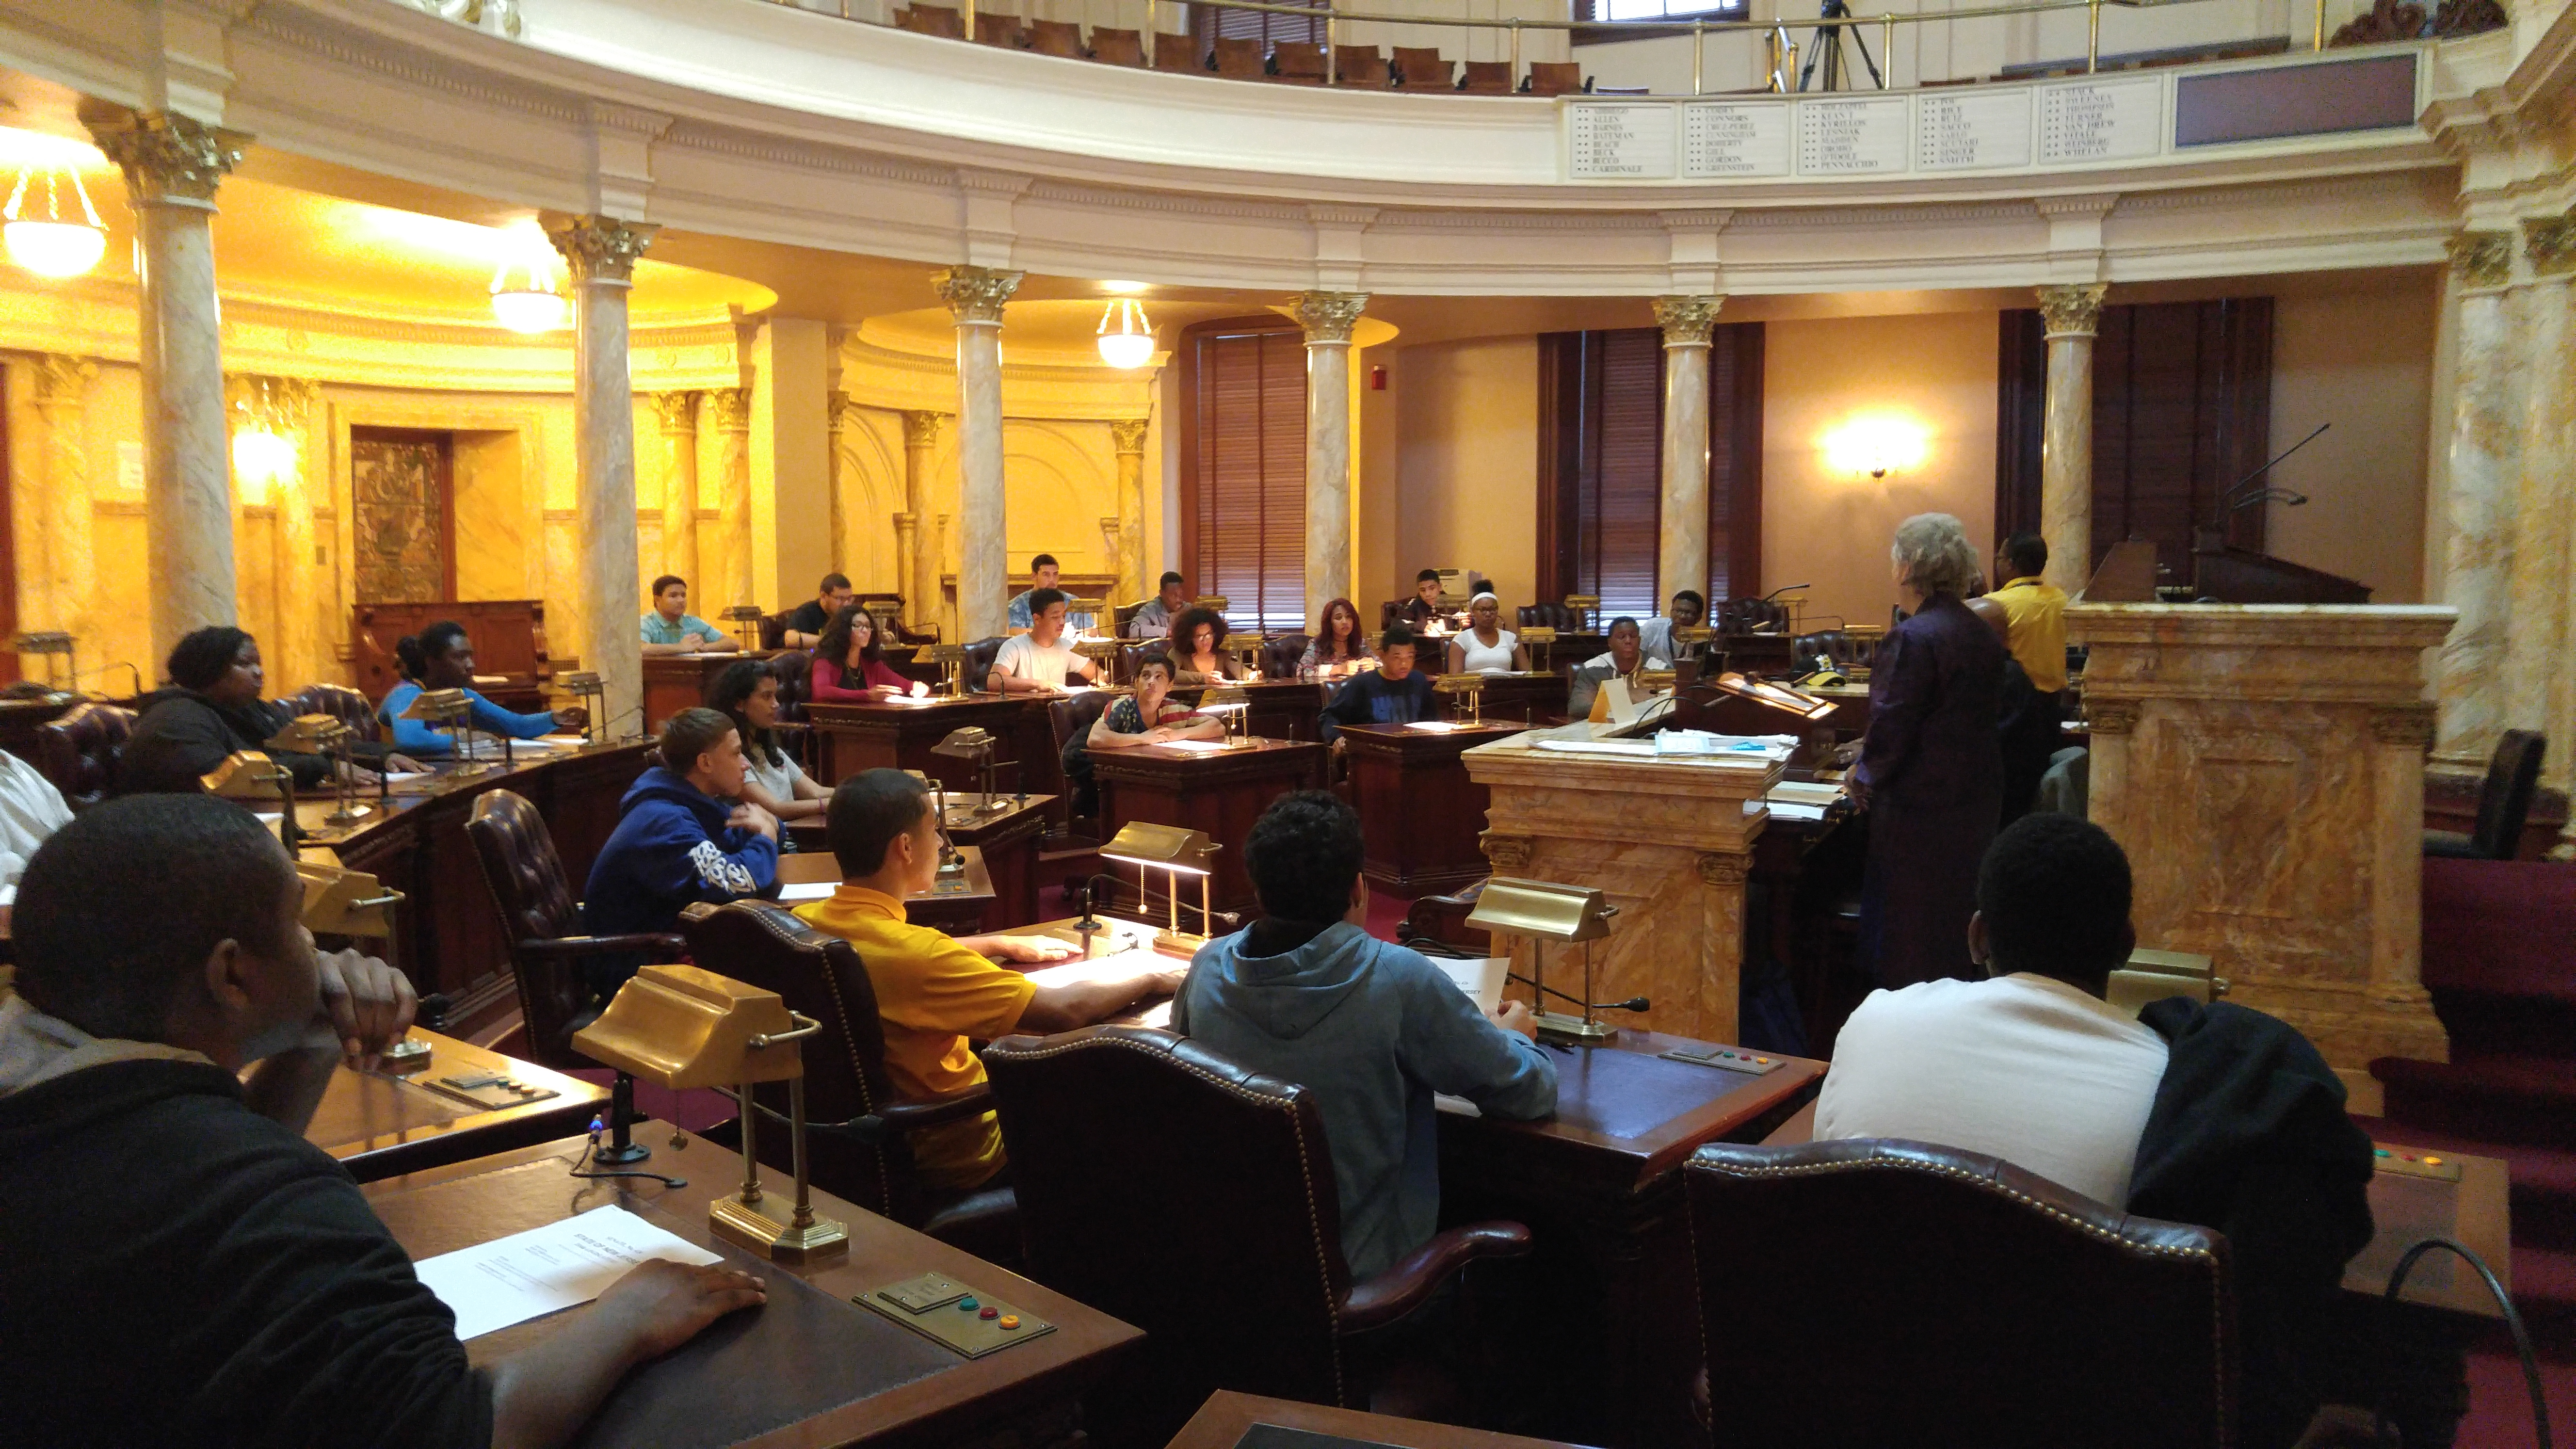 Students sitting in the State House in Trenton.